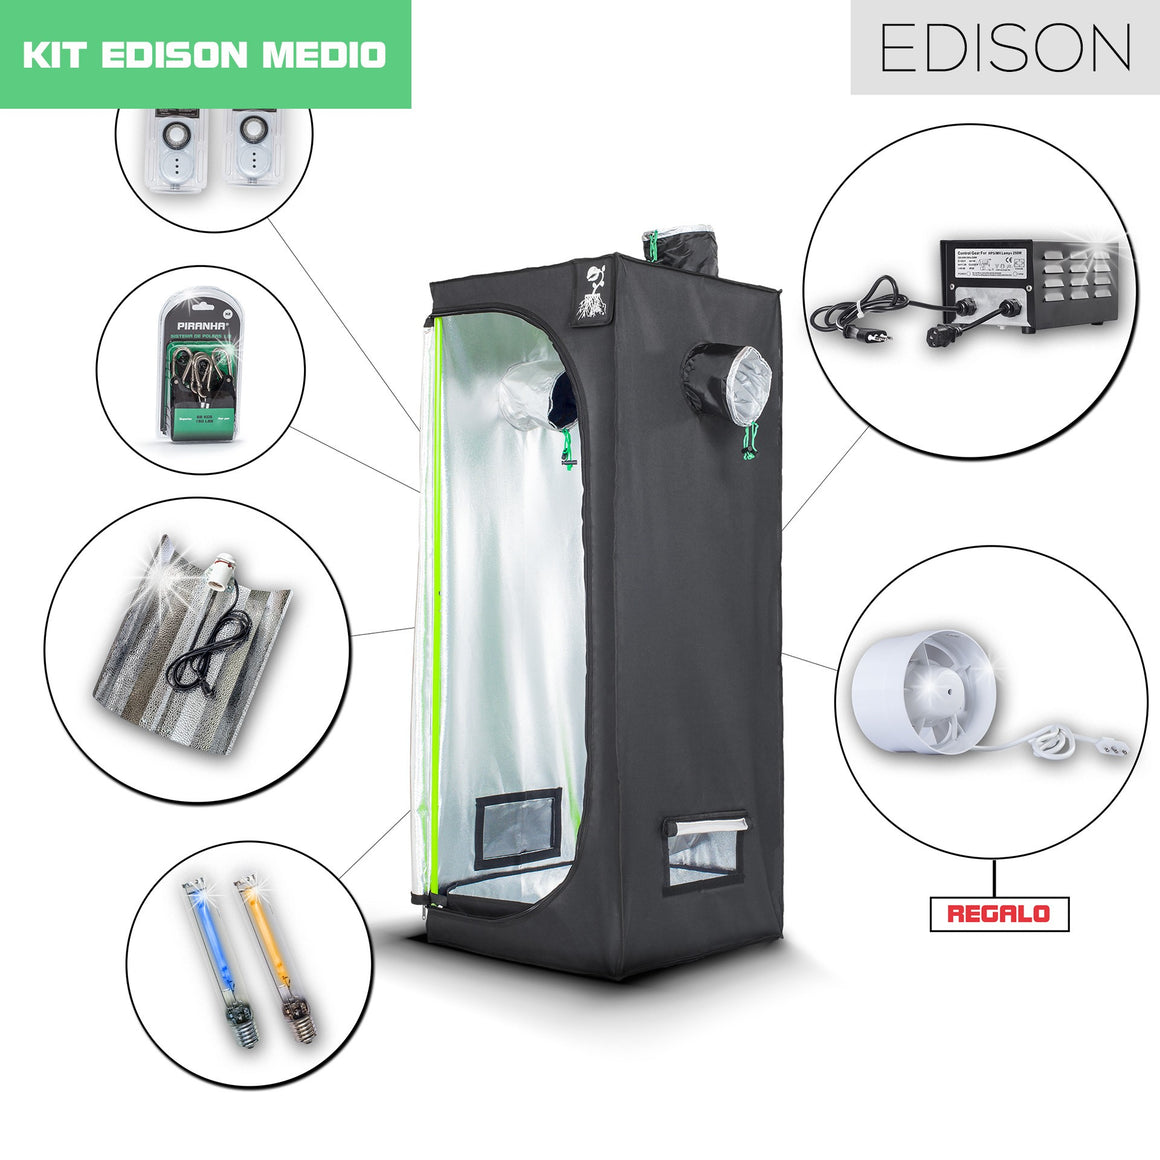 Kit Piranha Edison 60 - 250W MEDIO